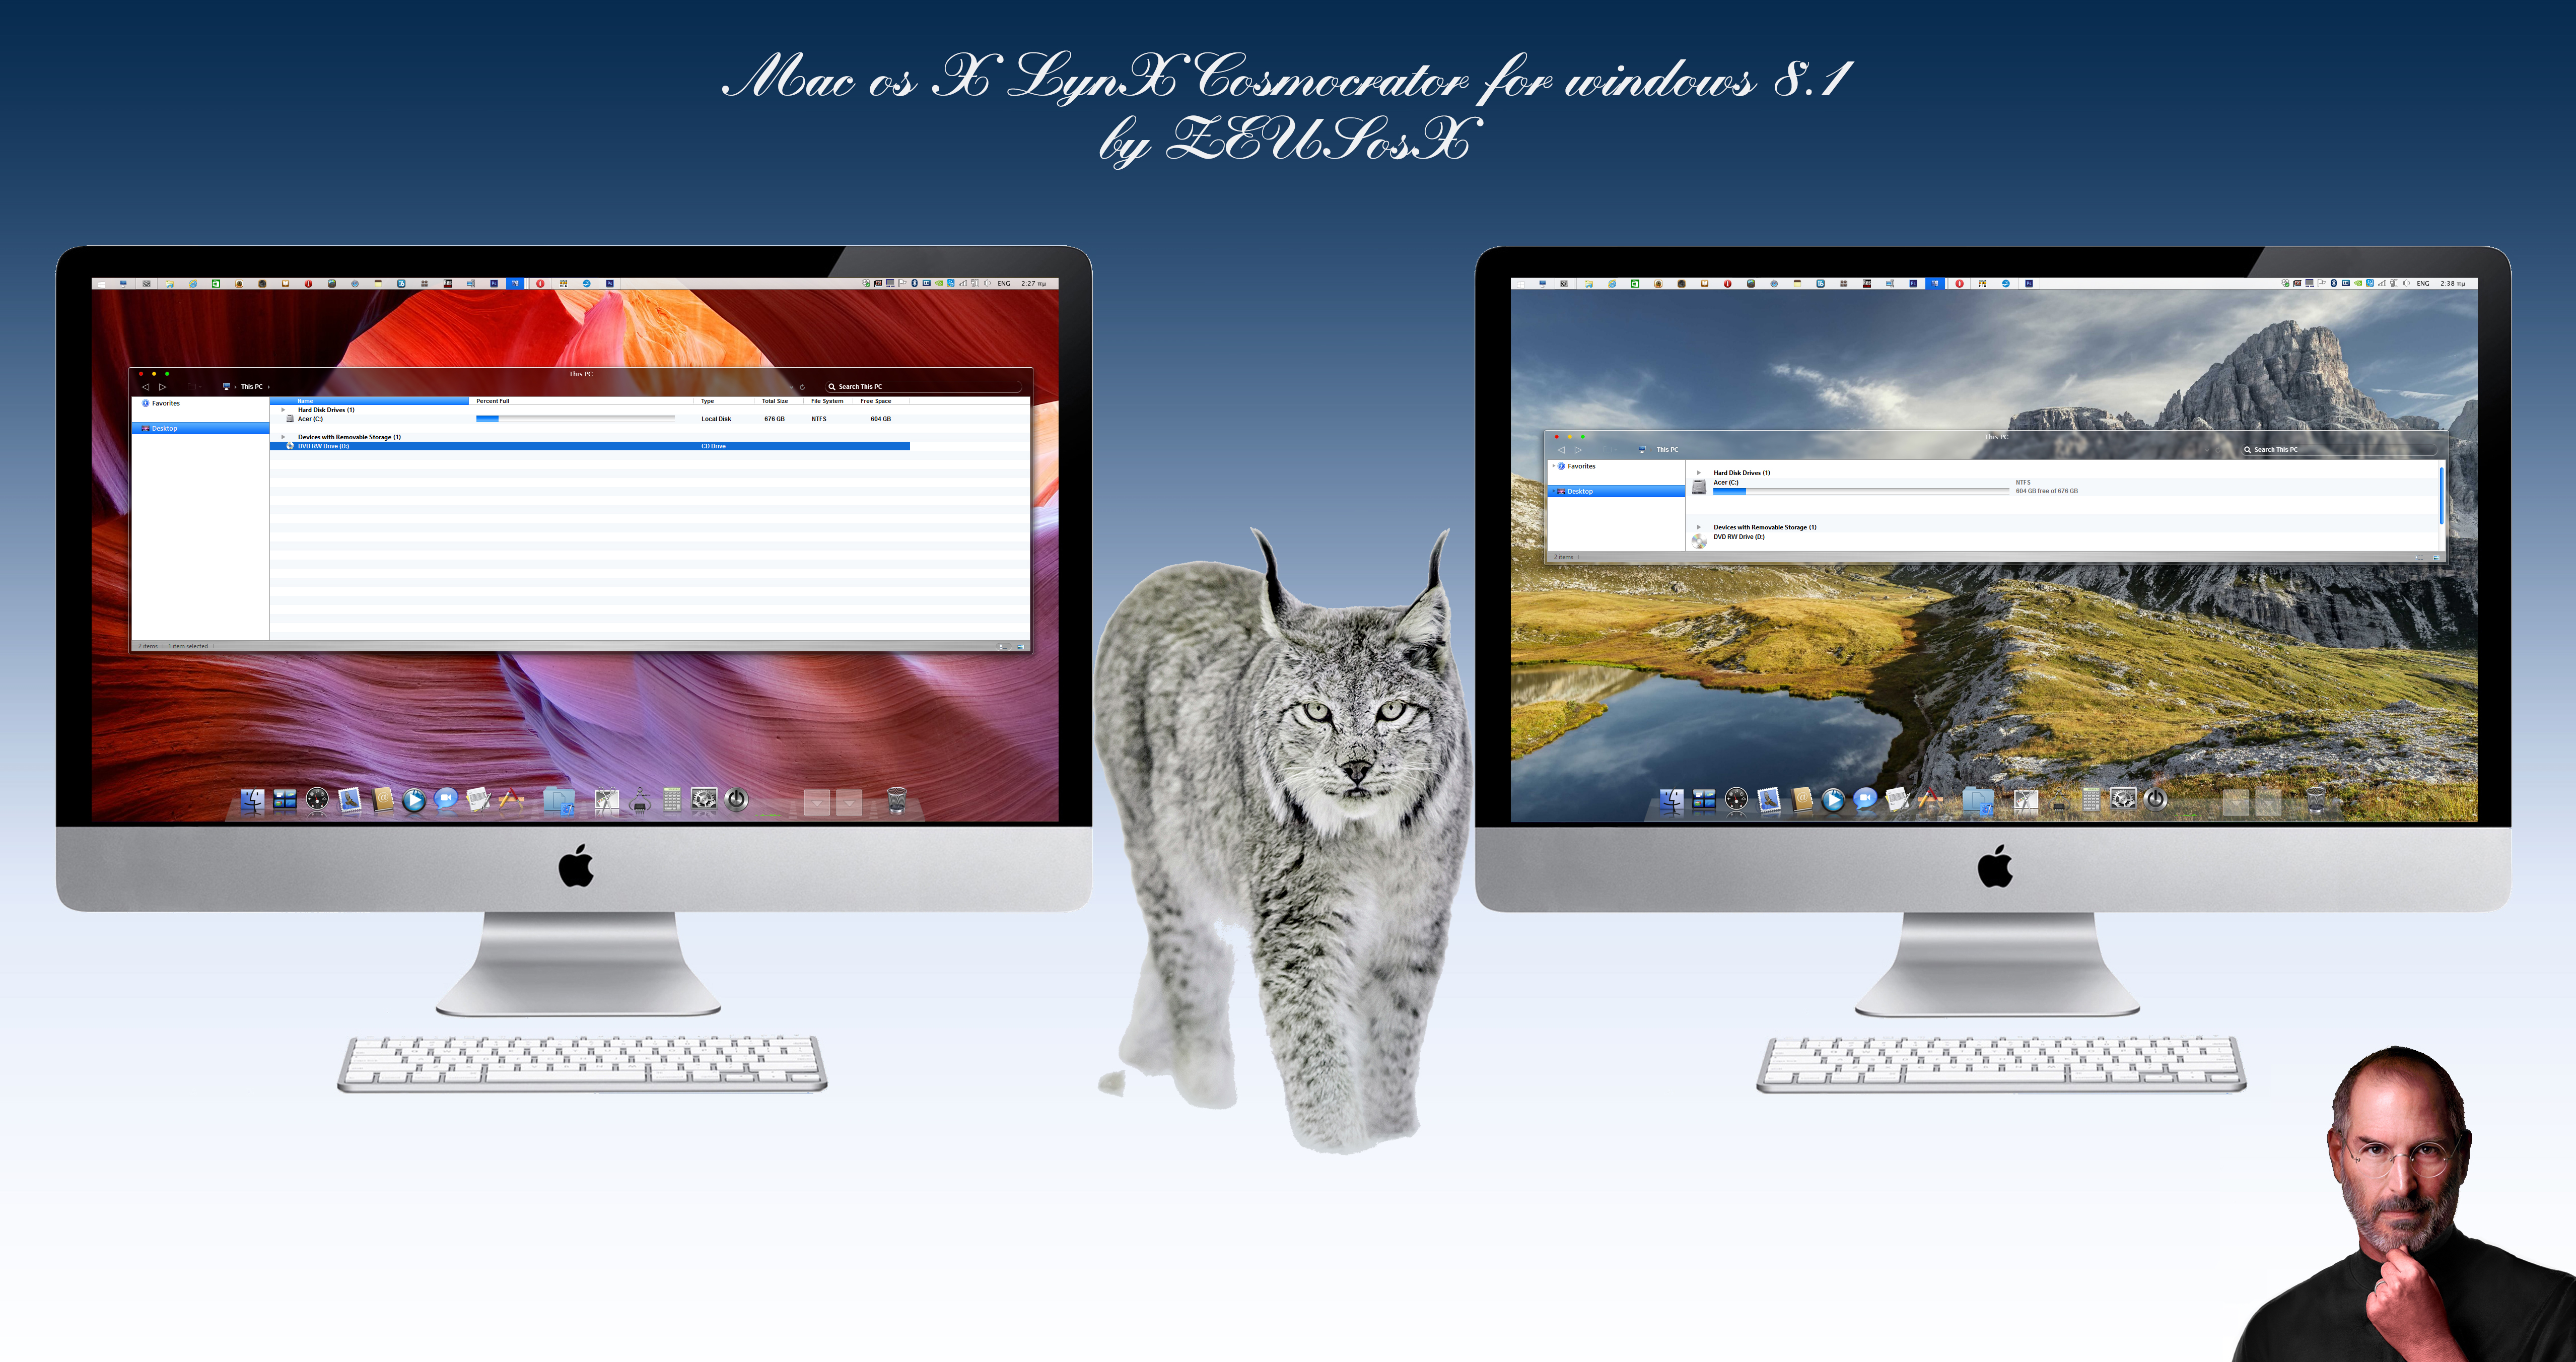 Mac os X LynX Theme for Windows 8.1 by ZEUSosX - OS